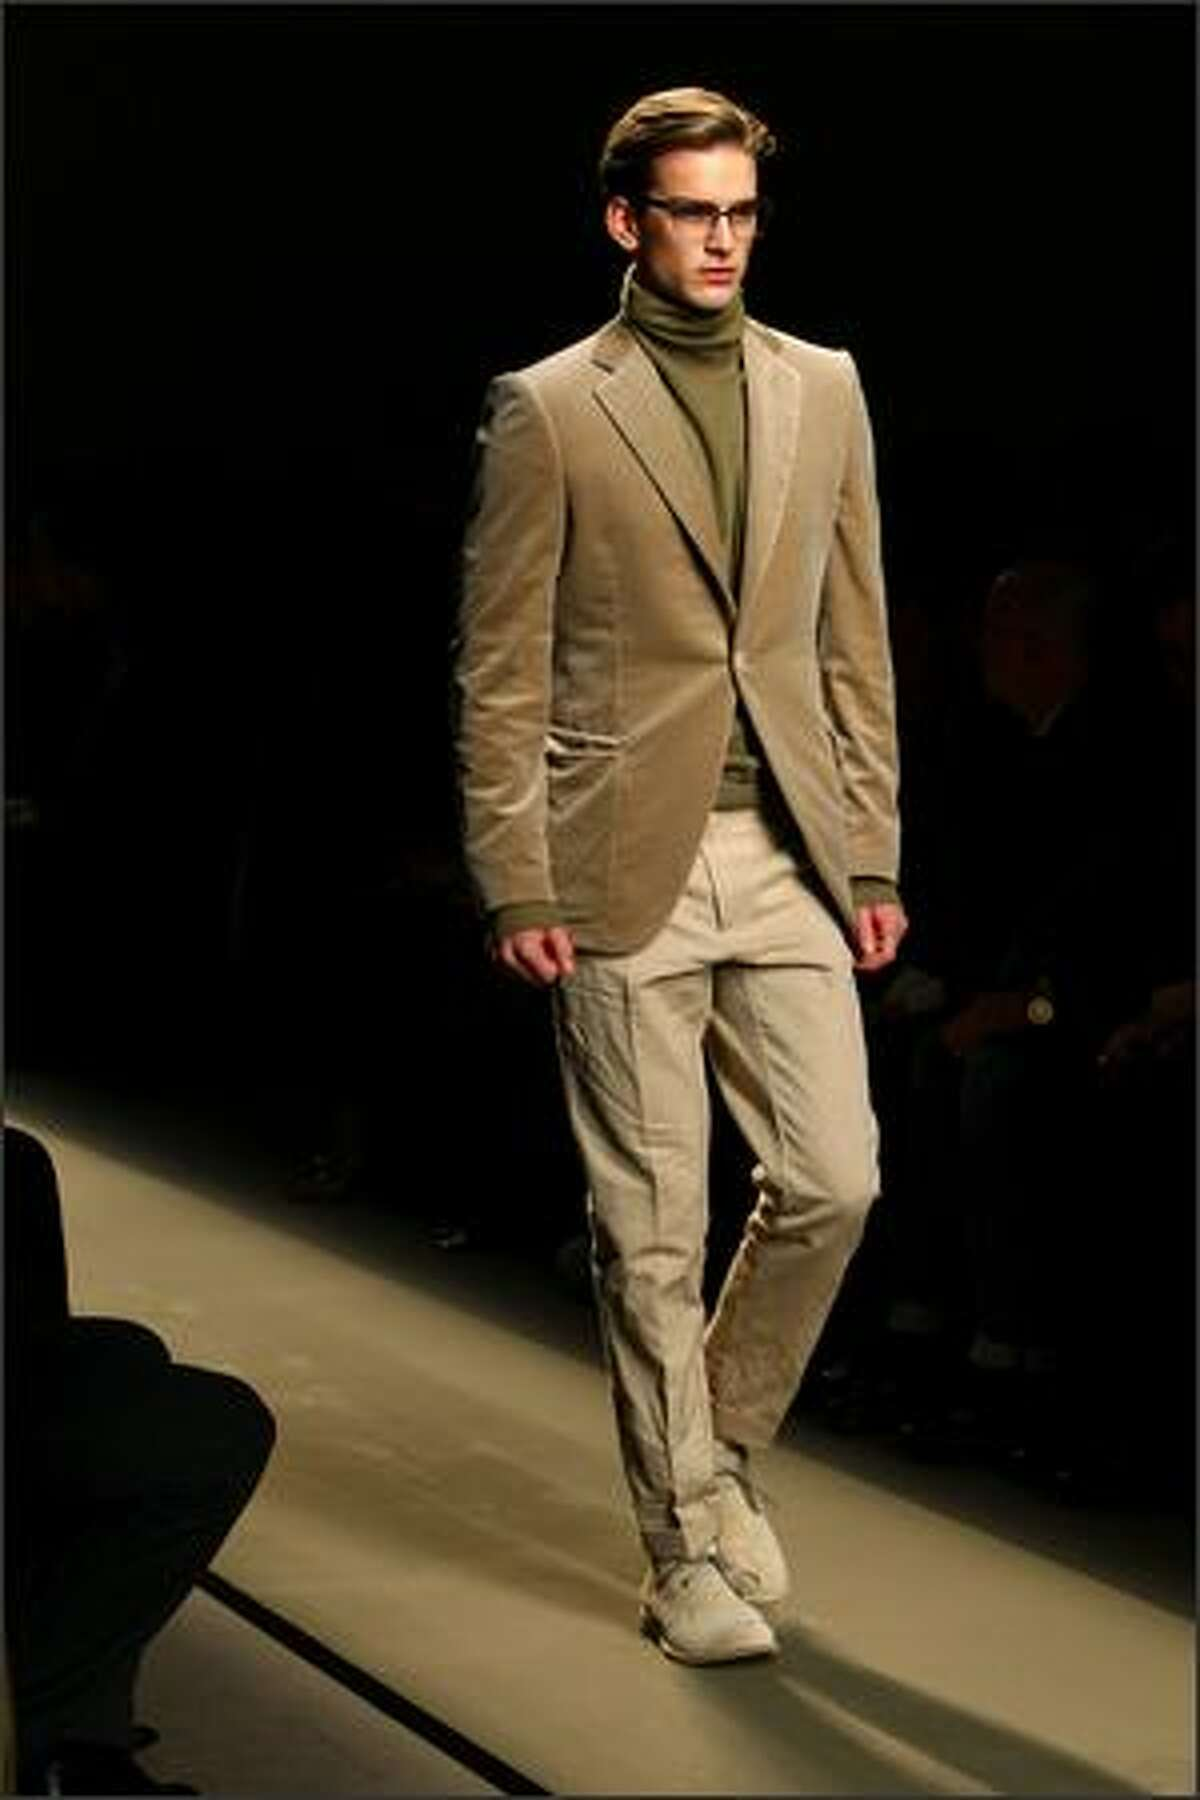 A model walks the runway during the Bottega Veneta show part of Milan Fashion Week Autumn/Winter 2009/10 Menswear on Sunday in Milan, Italy.